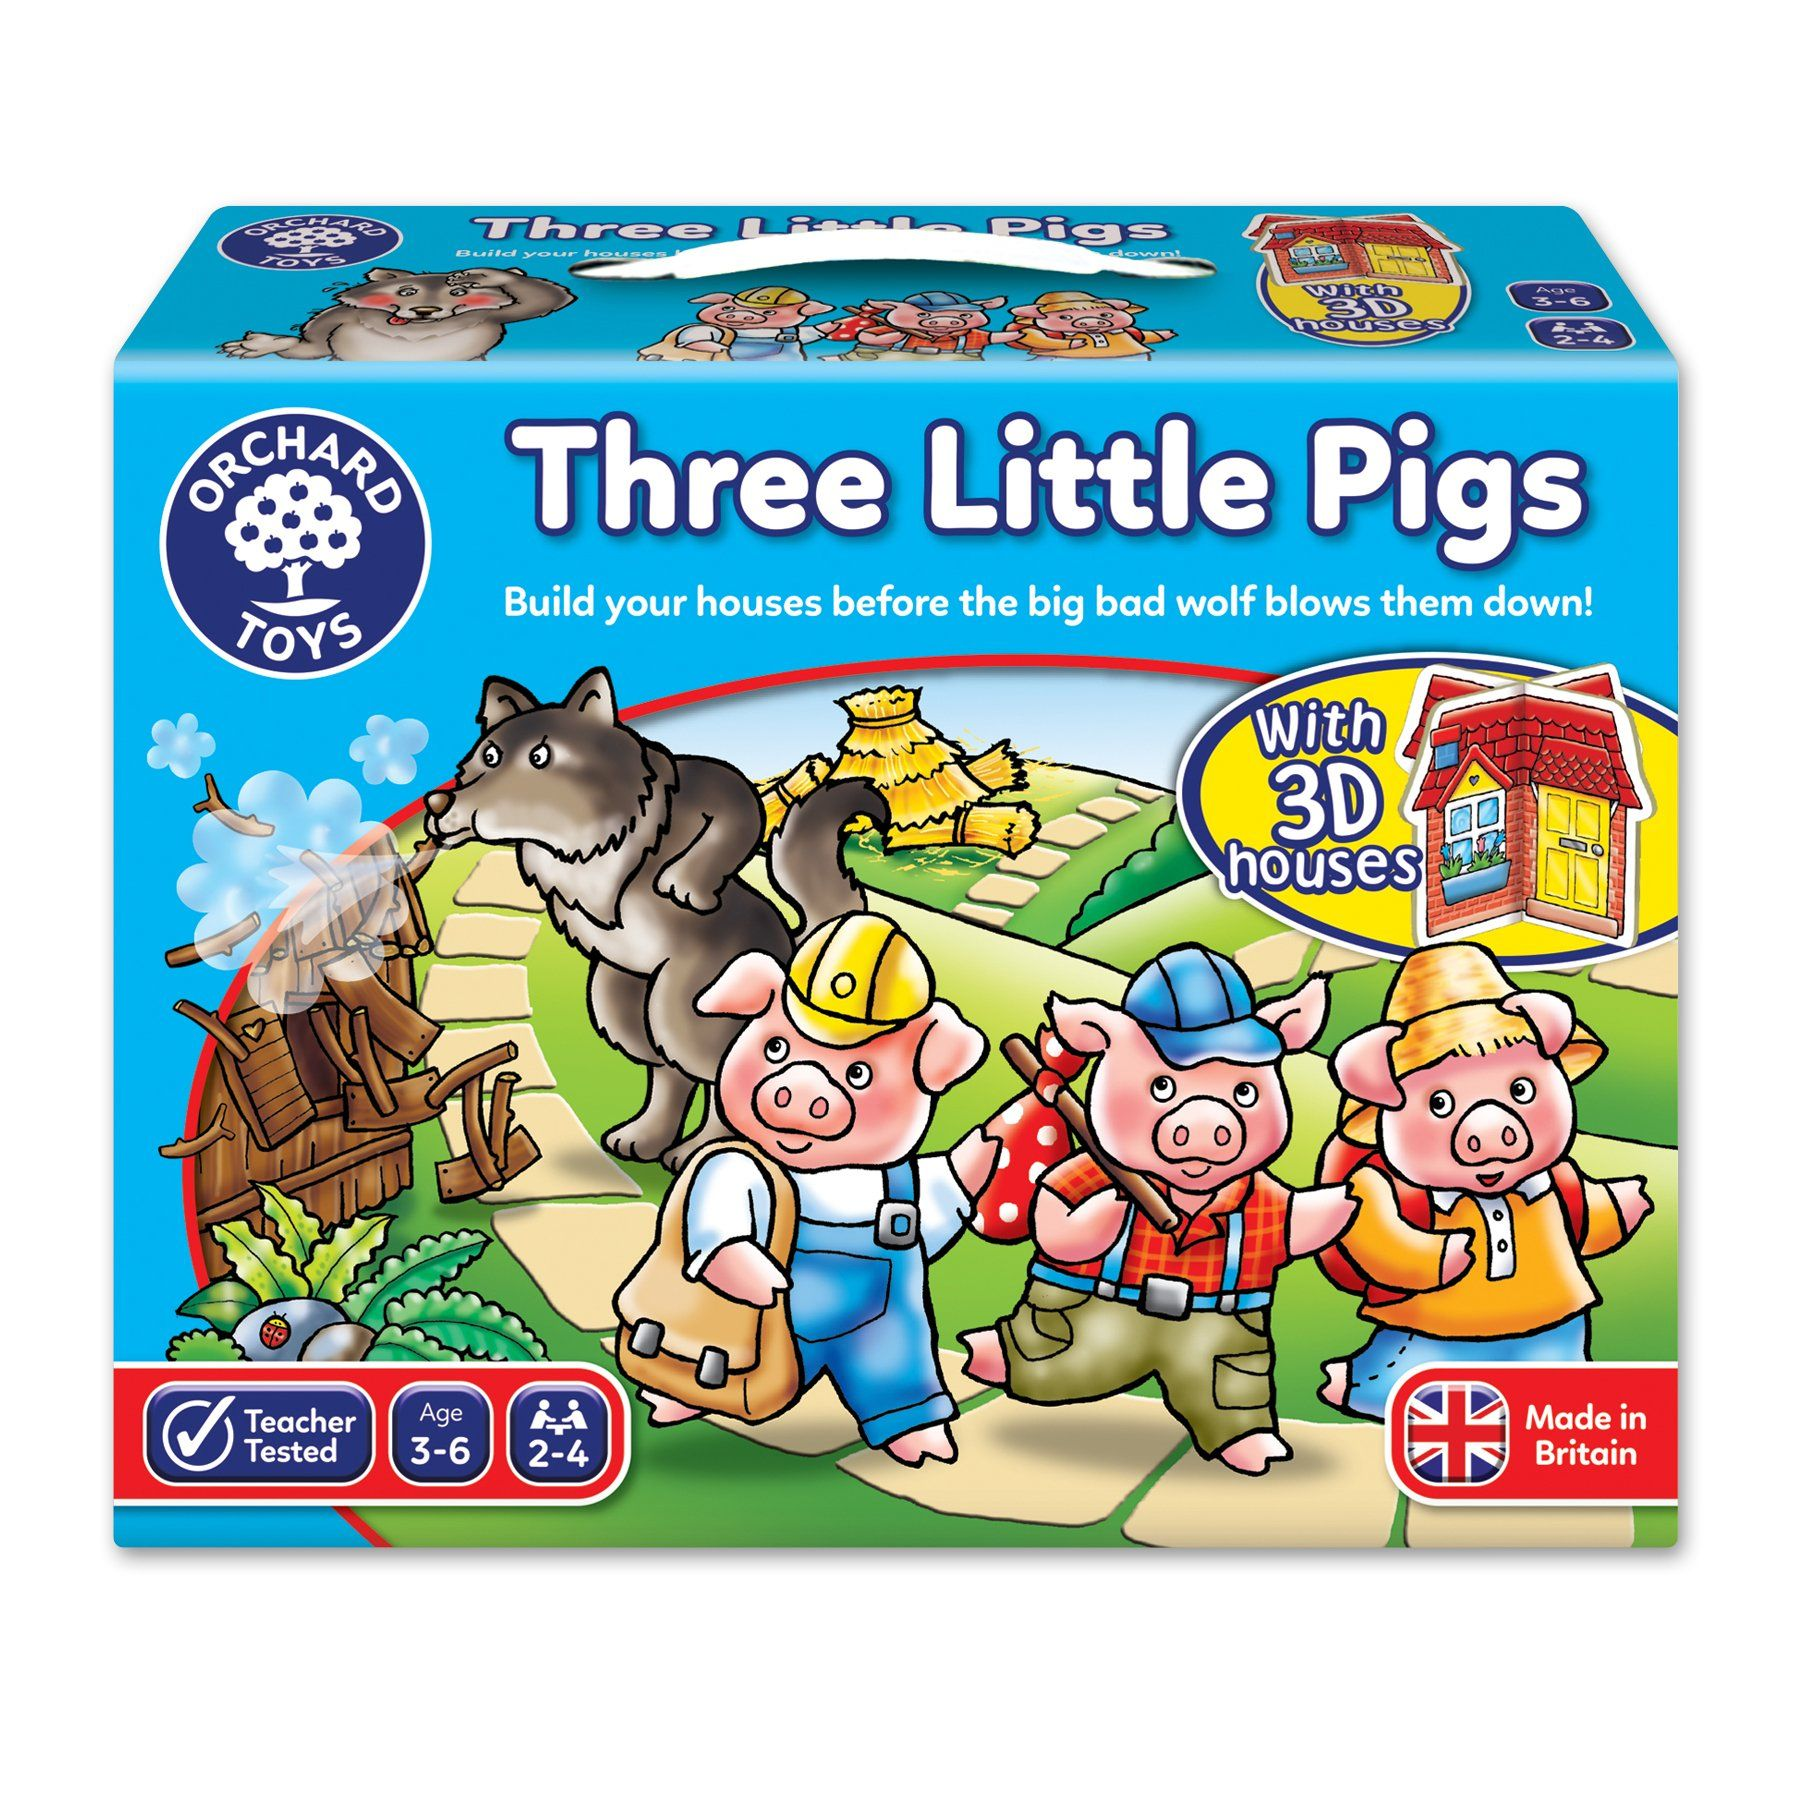 Orchard Toys Three Little Pigs Game Amazon Co Uk Toys Games In 2020 Orchard Toys Pig Games Little Pigs A quiz by starline gamez. pinterest